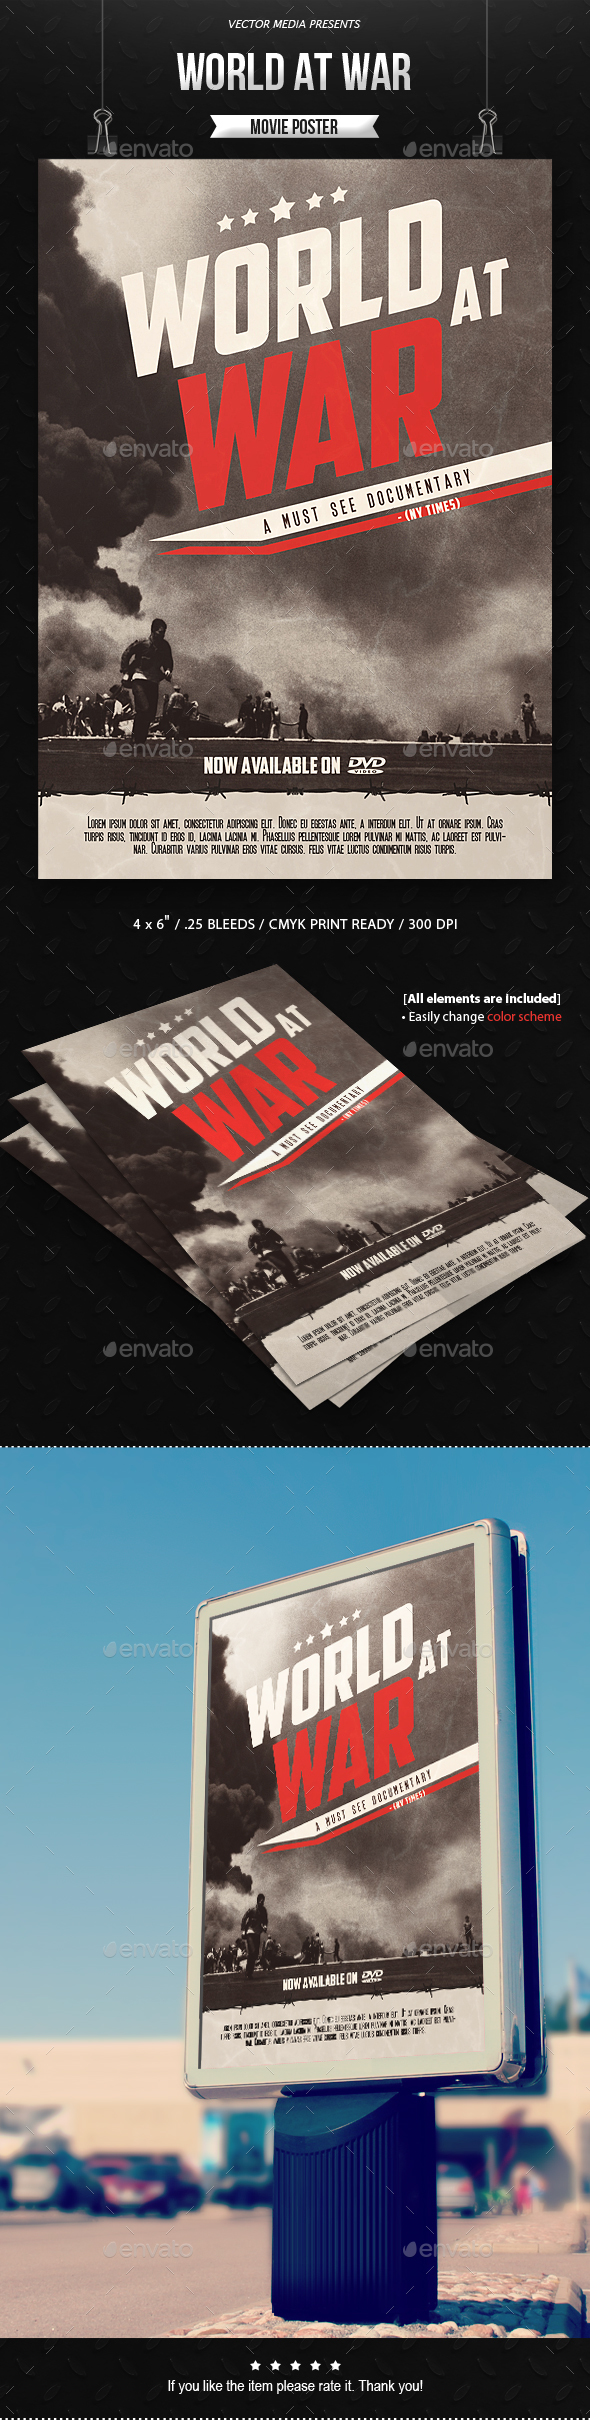 World at War - Movie Poster - Miscellaneous Events